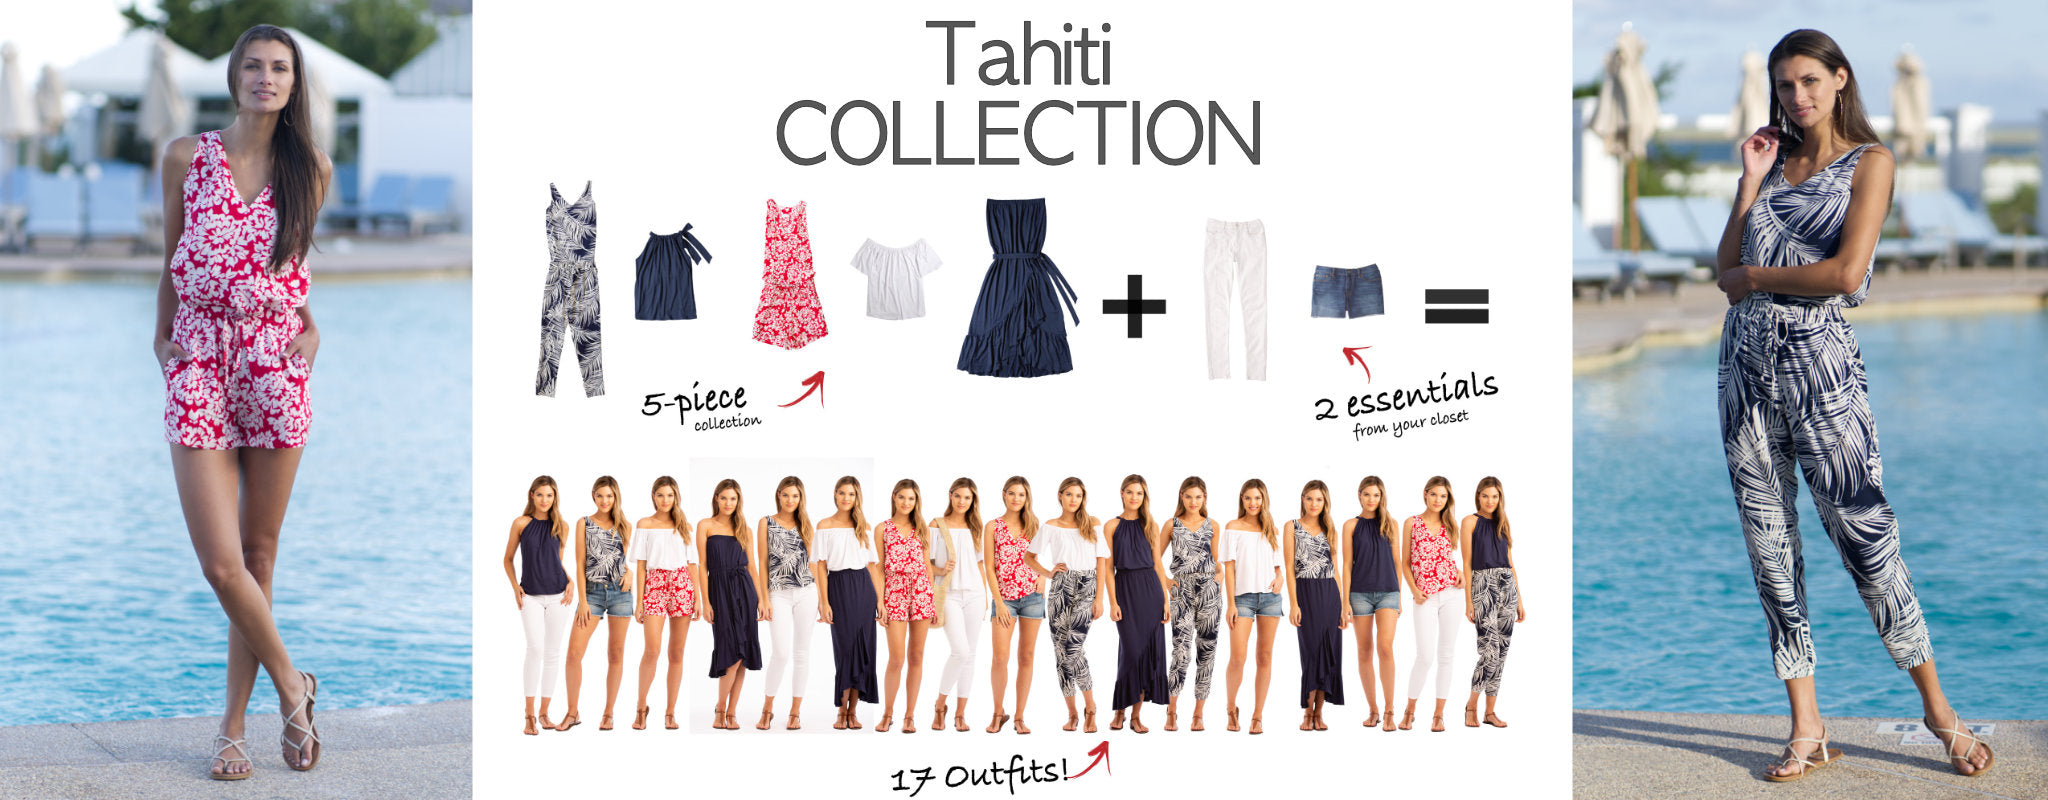 Tahiti Collection: 5 items = 17 outfits